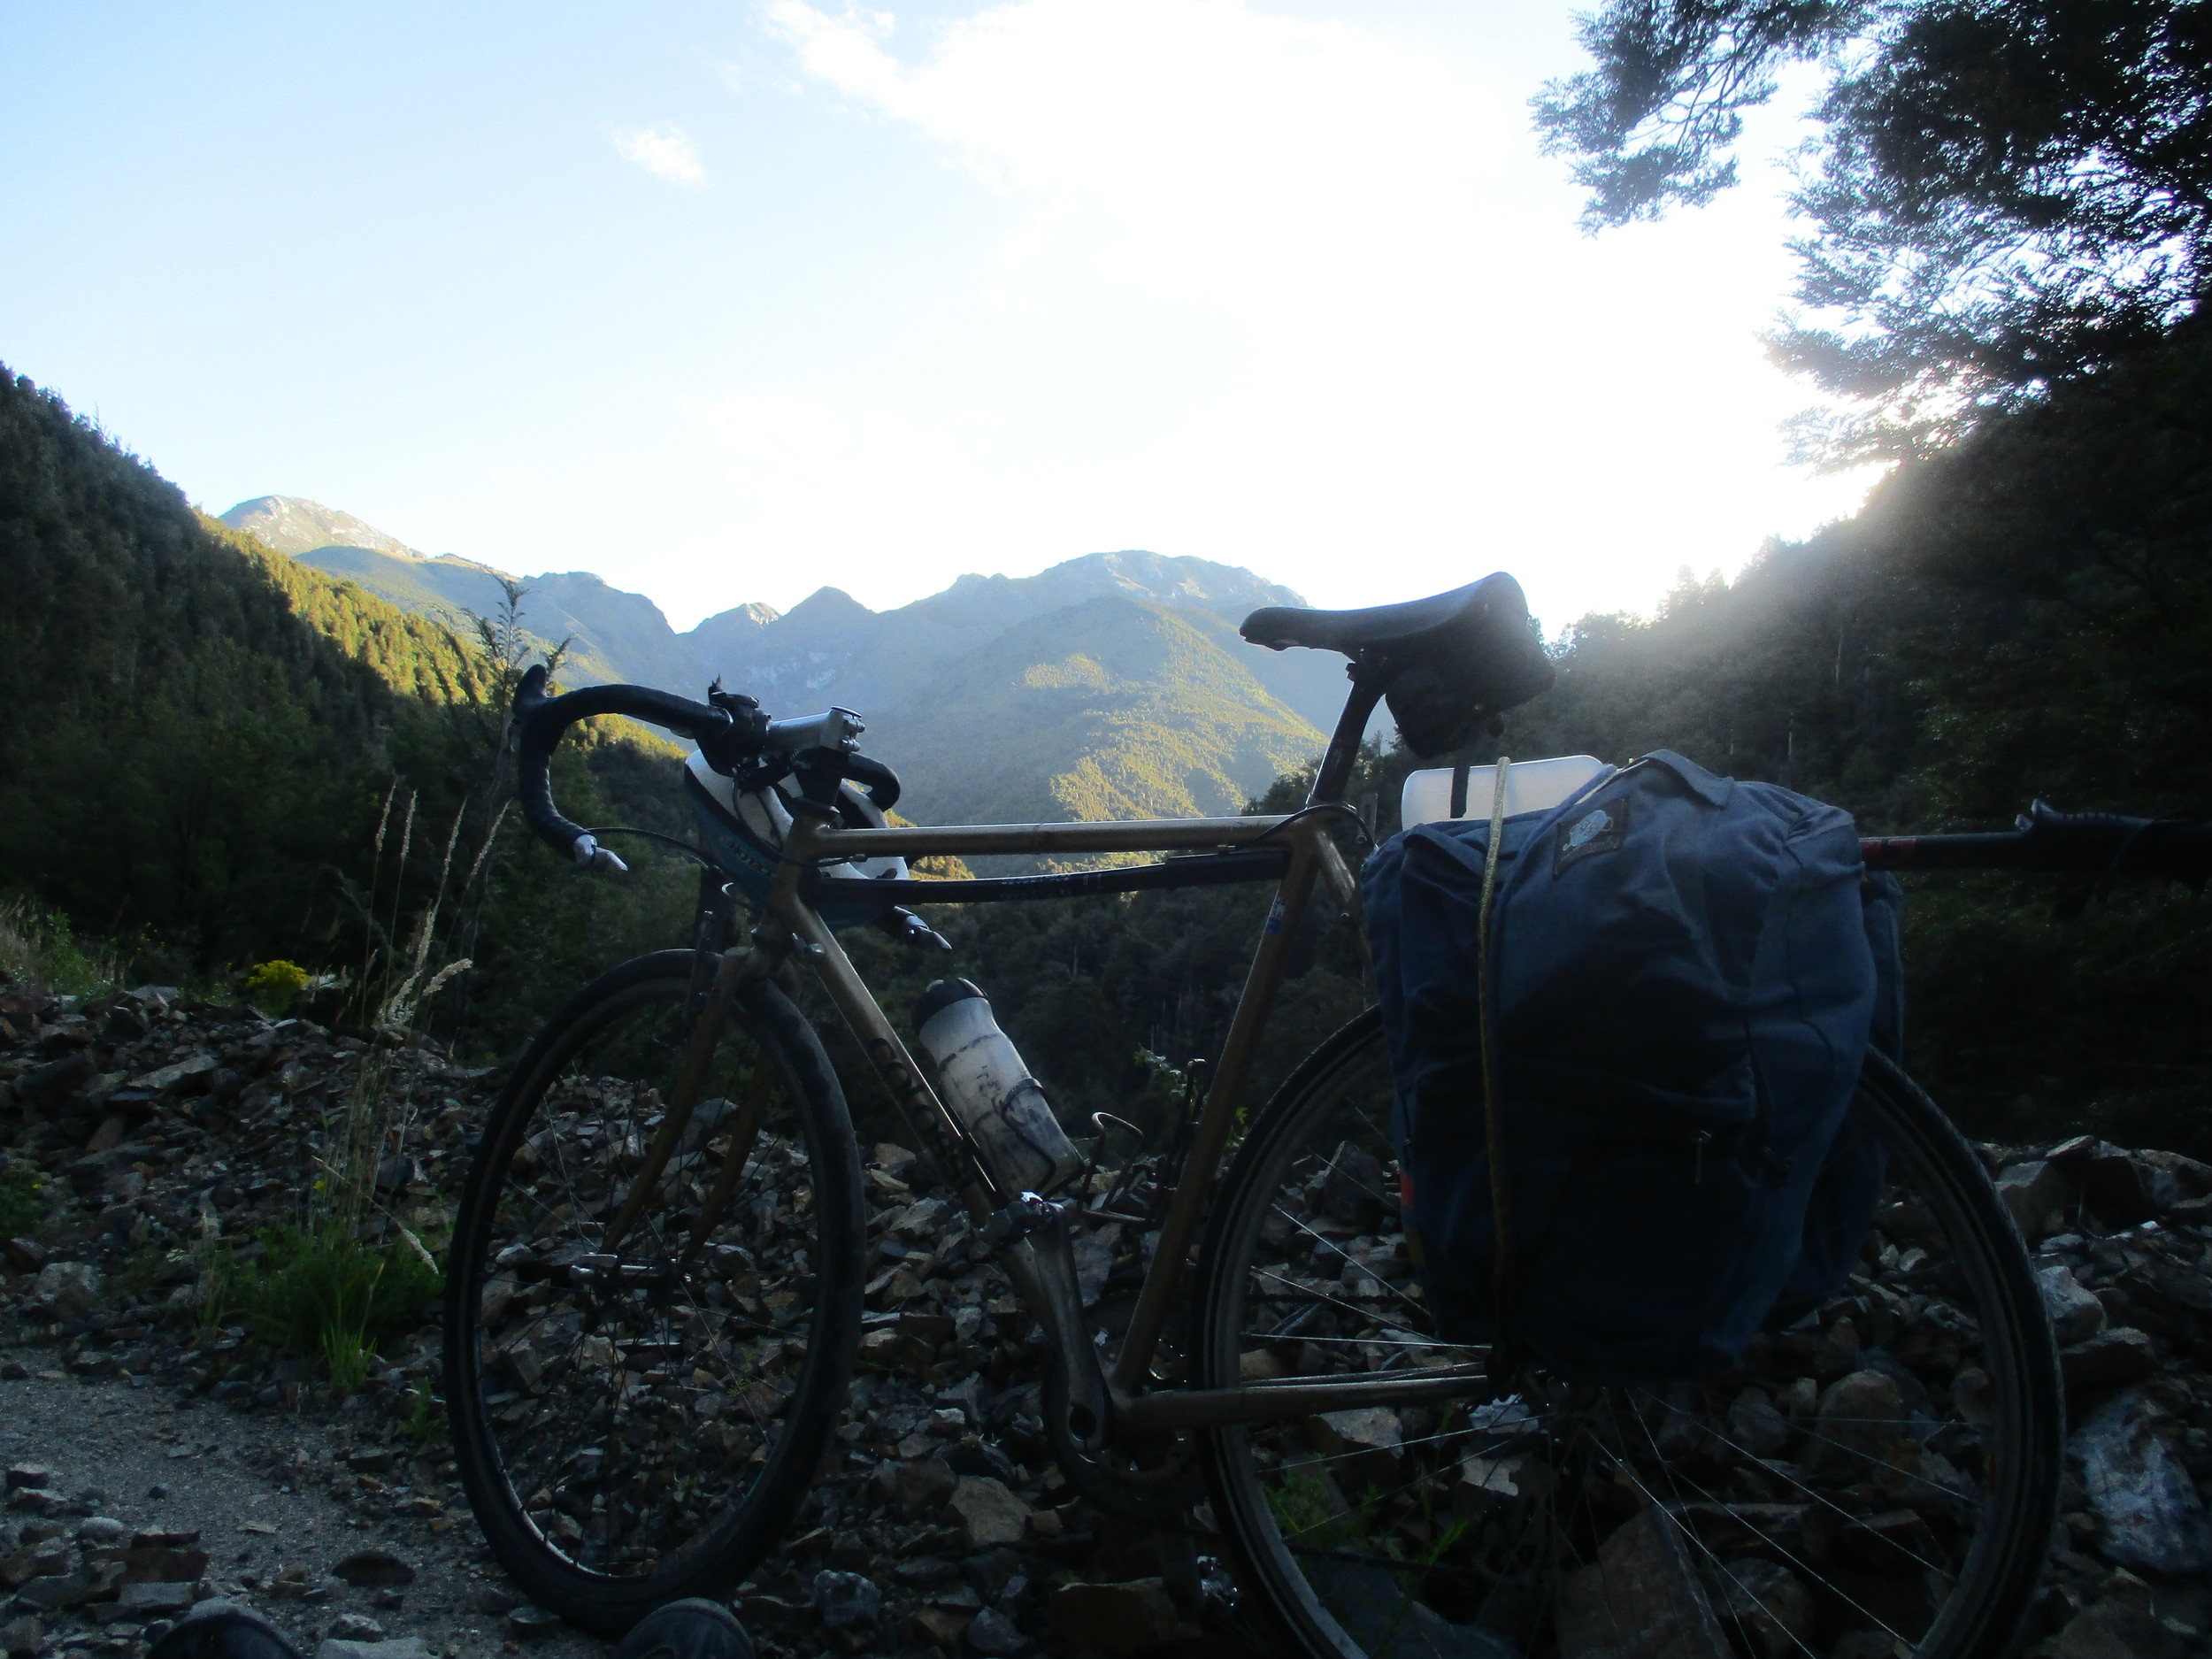 Heading up the Wangapeka valley on route to the Mount Owen Massif